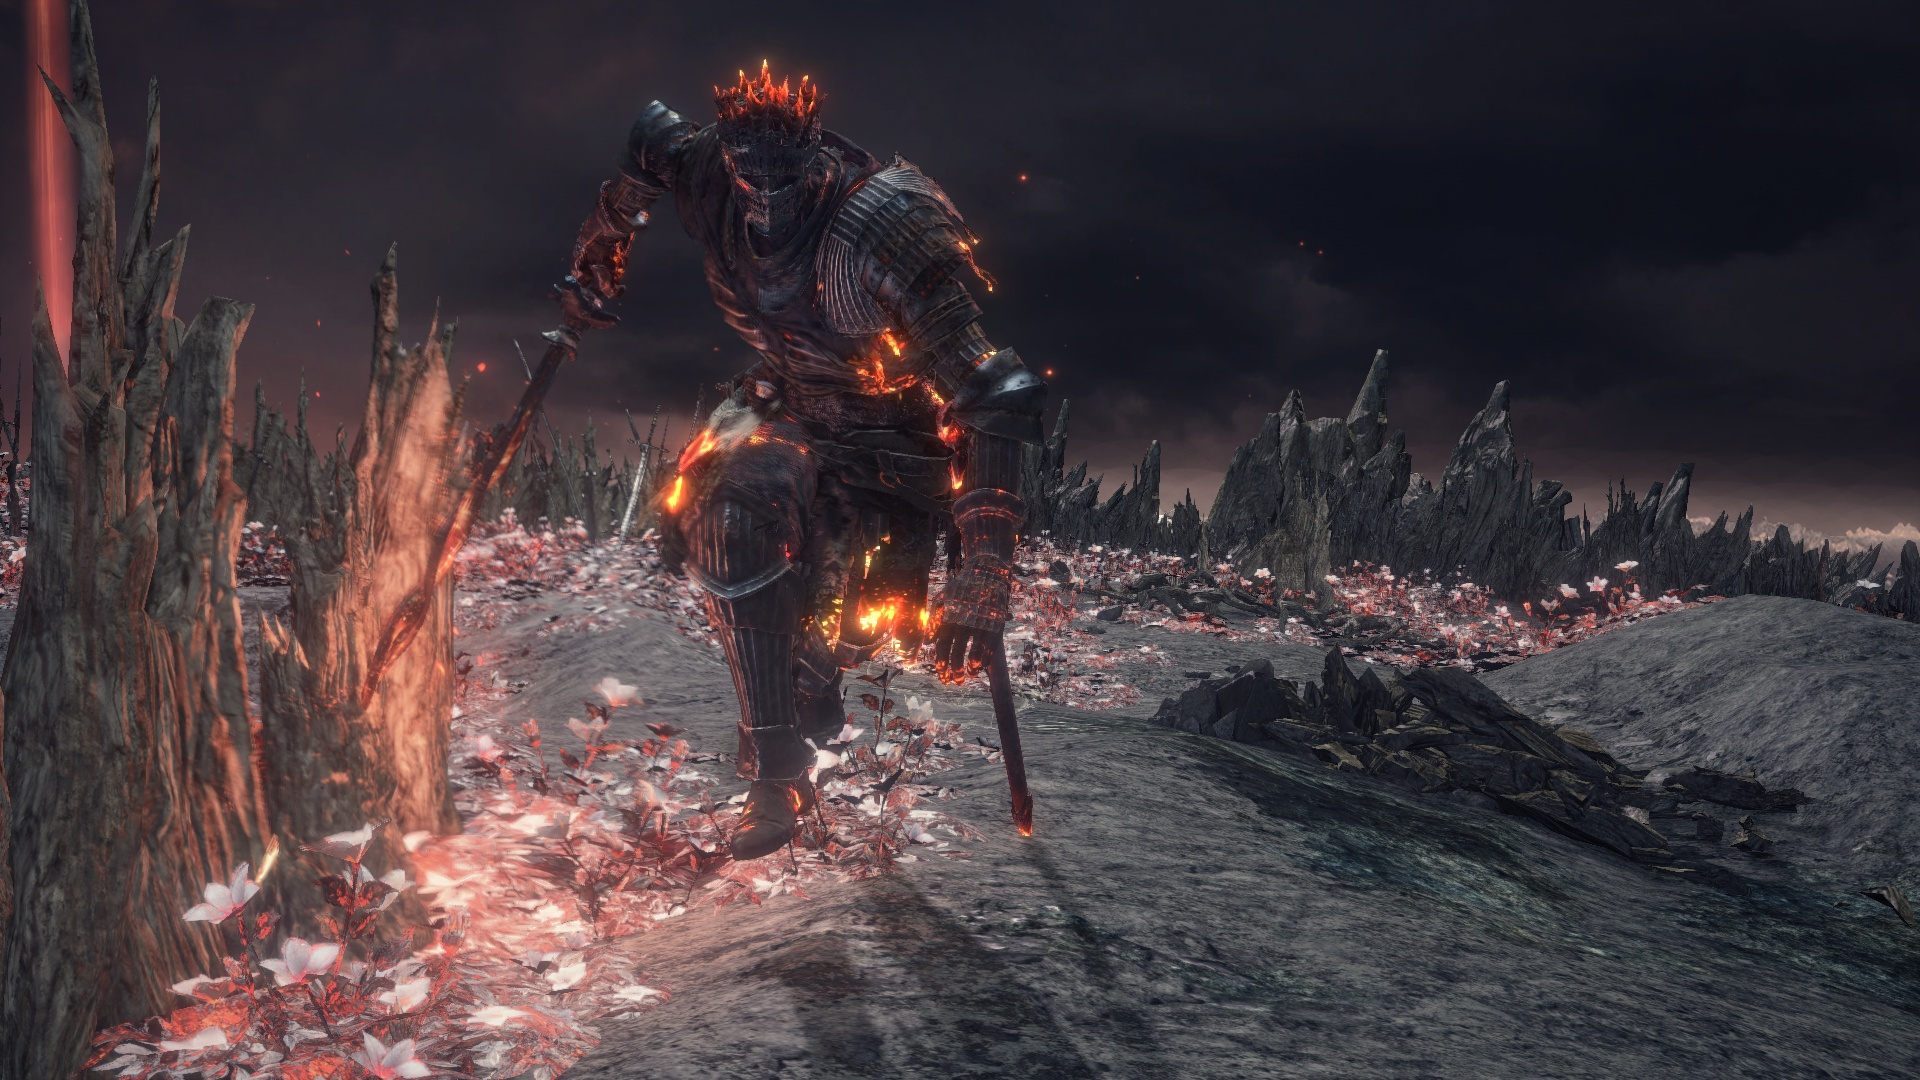 6 games harder than dark souls 3 bosses difficulty